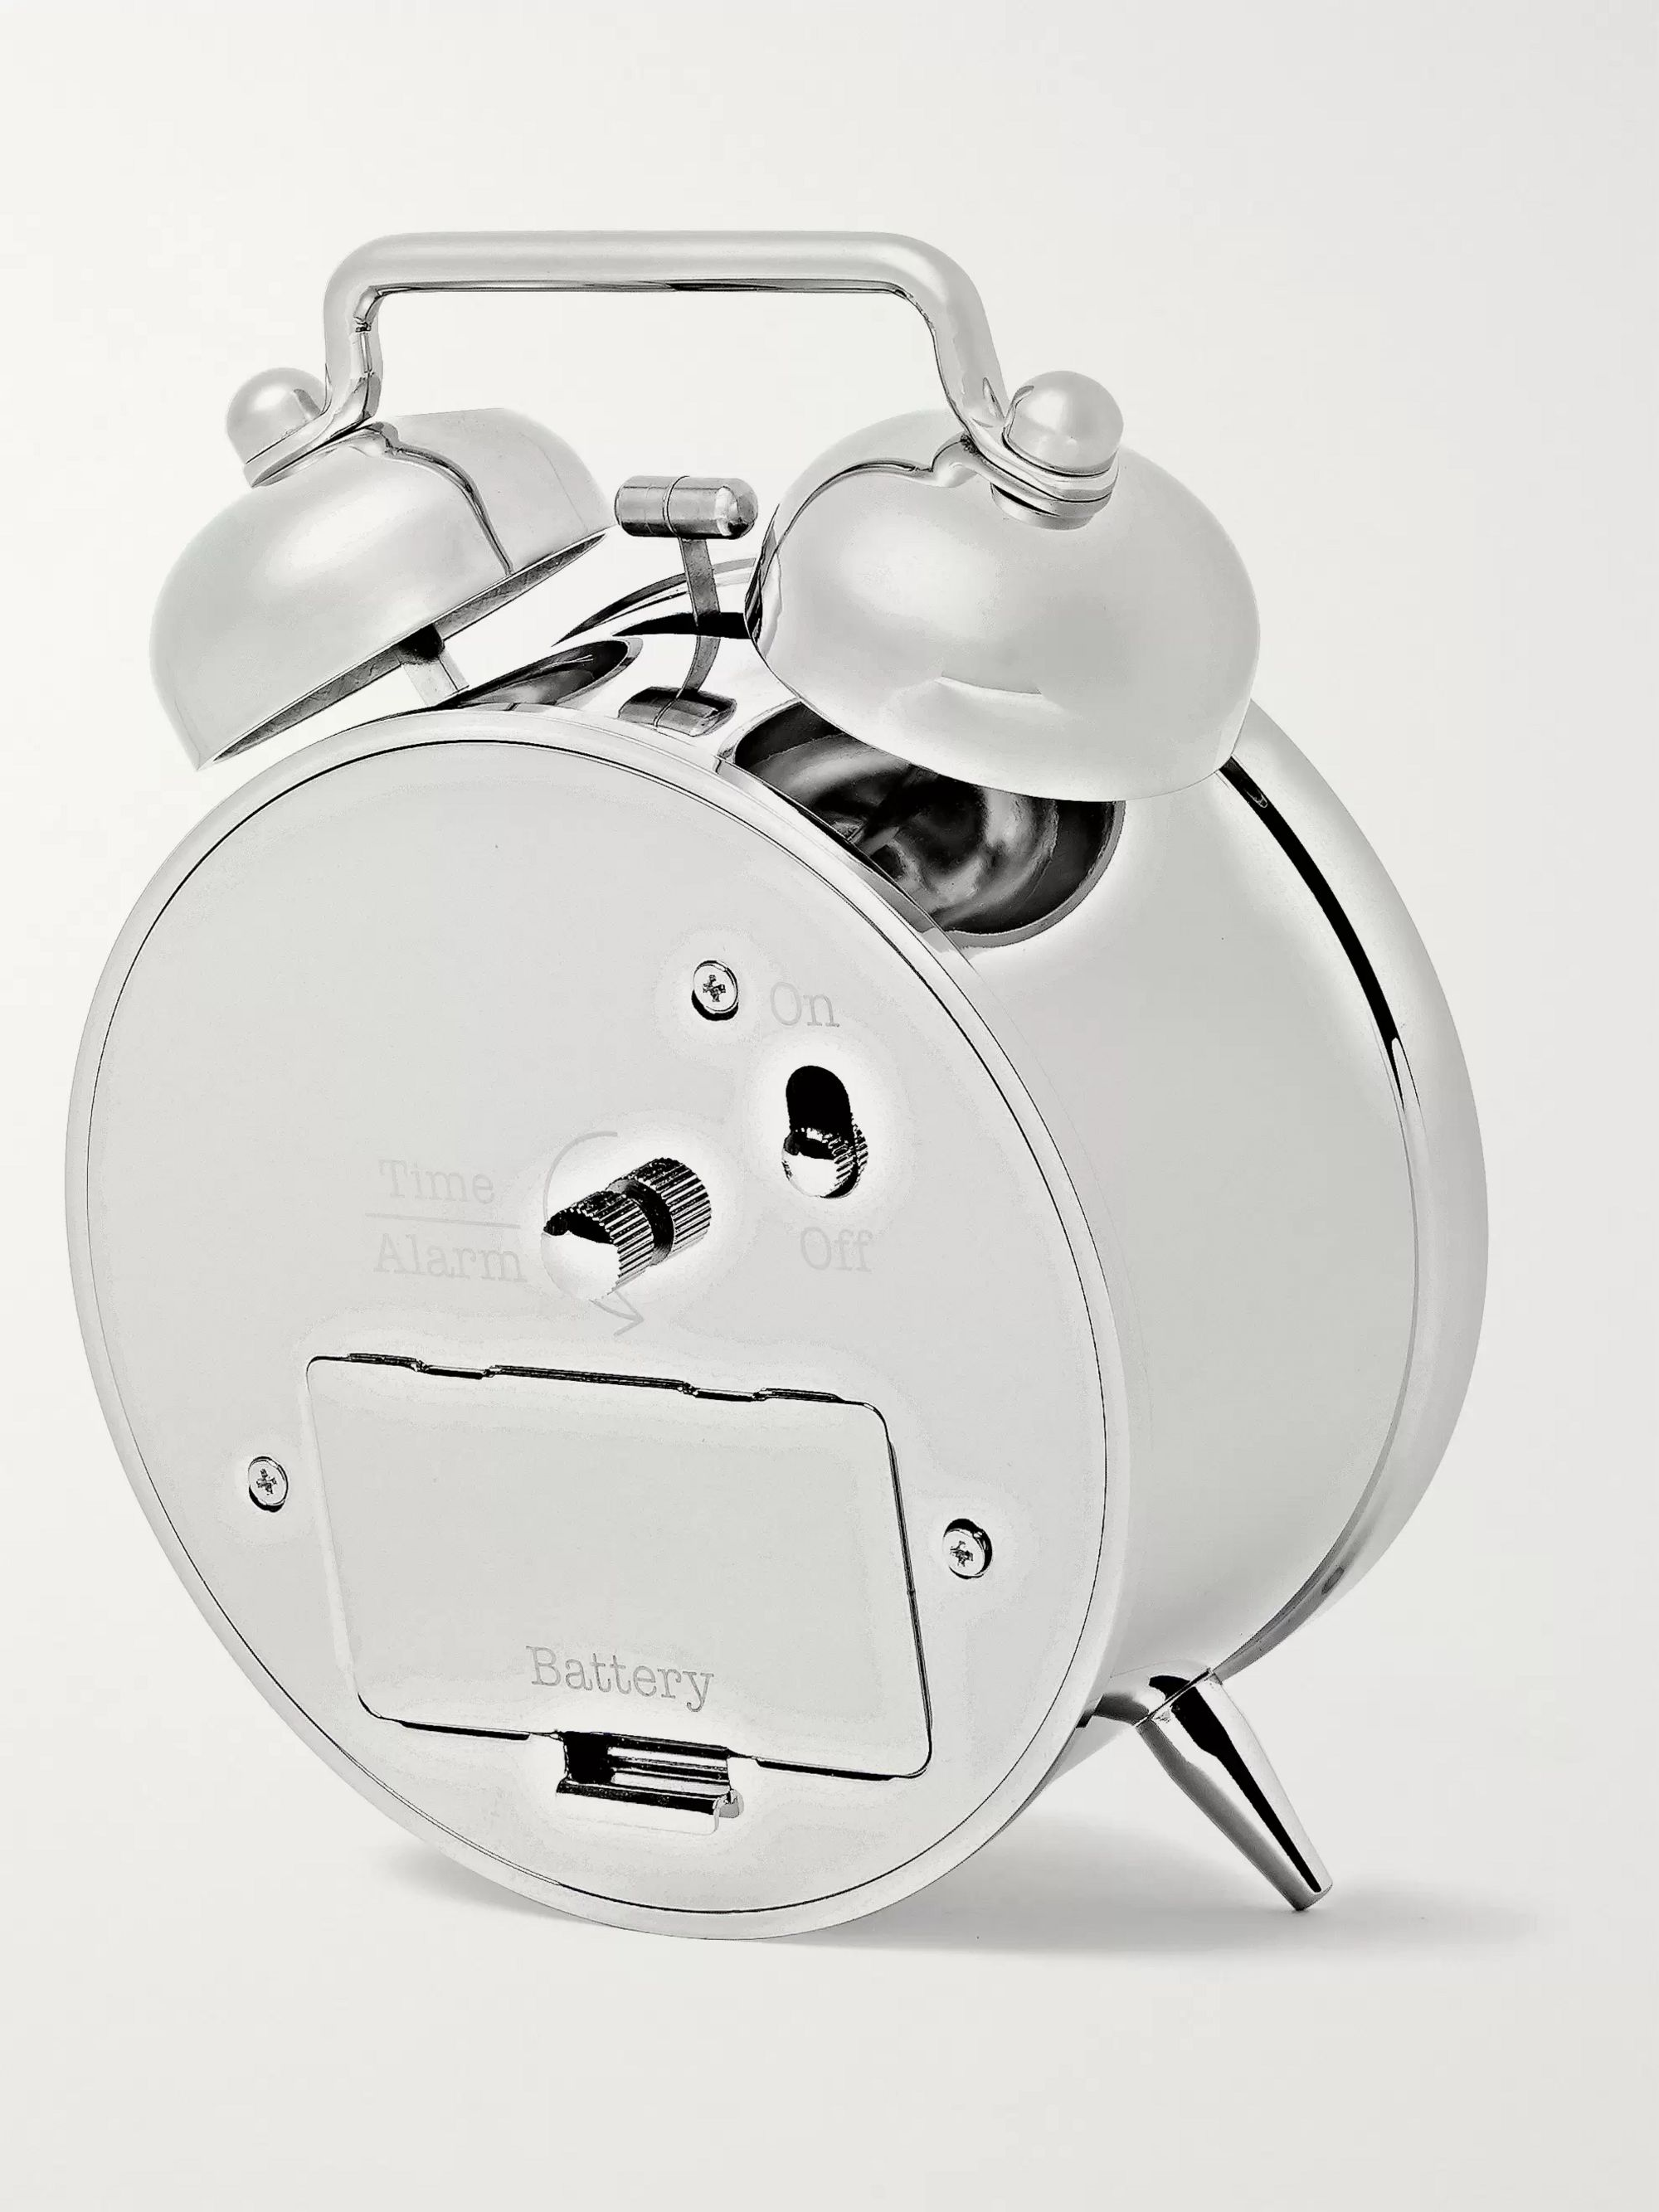 Tiffany & Co. Everyday Objects Nickel Twin-Bell Alarm Clock